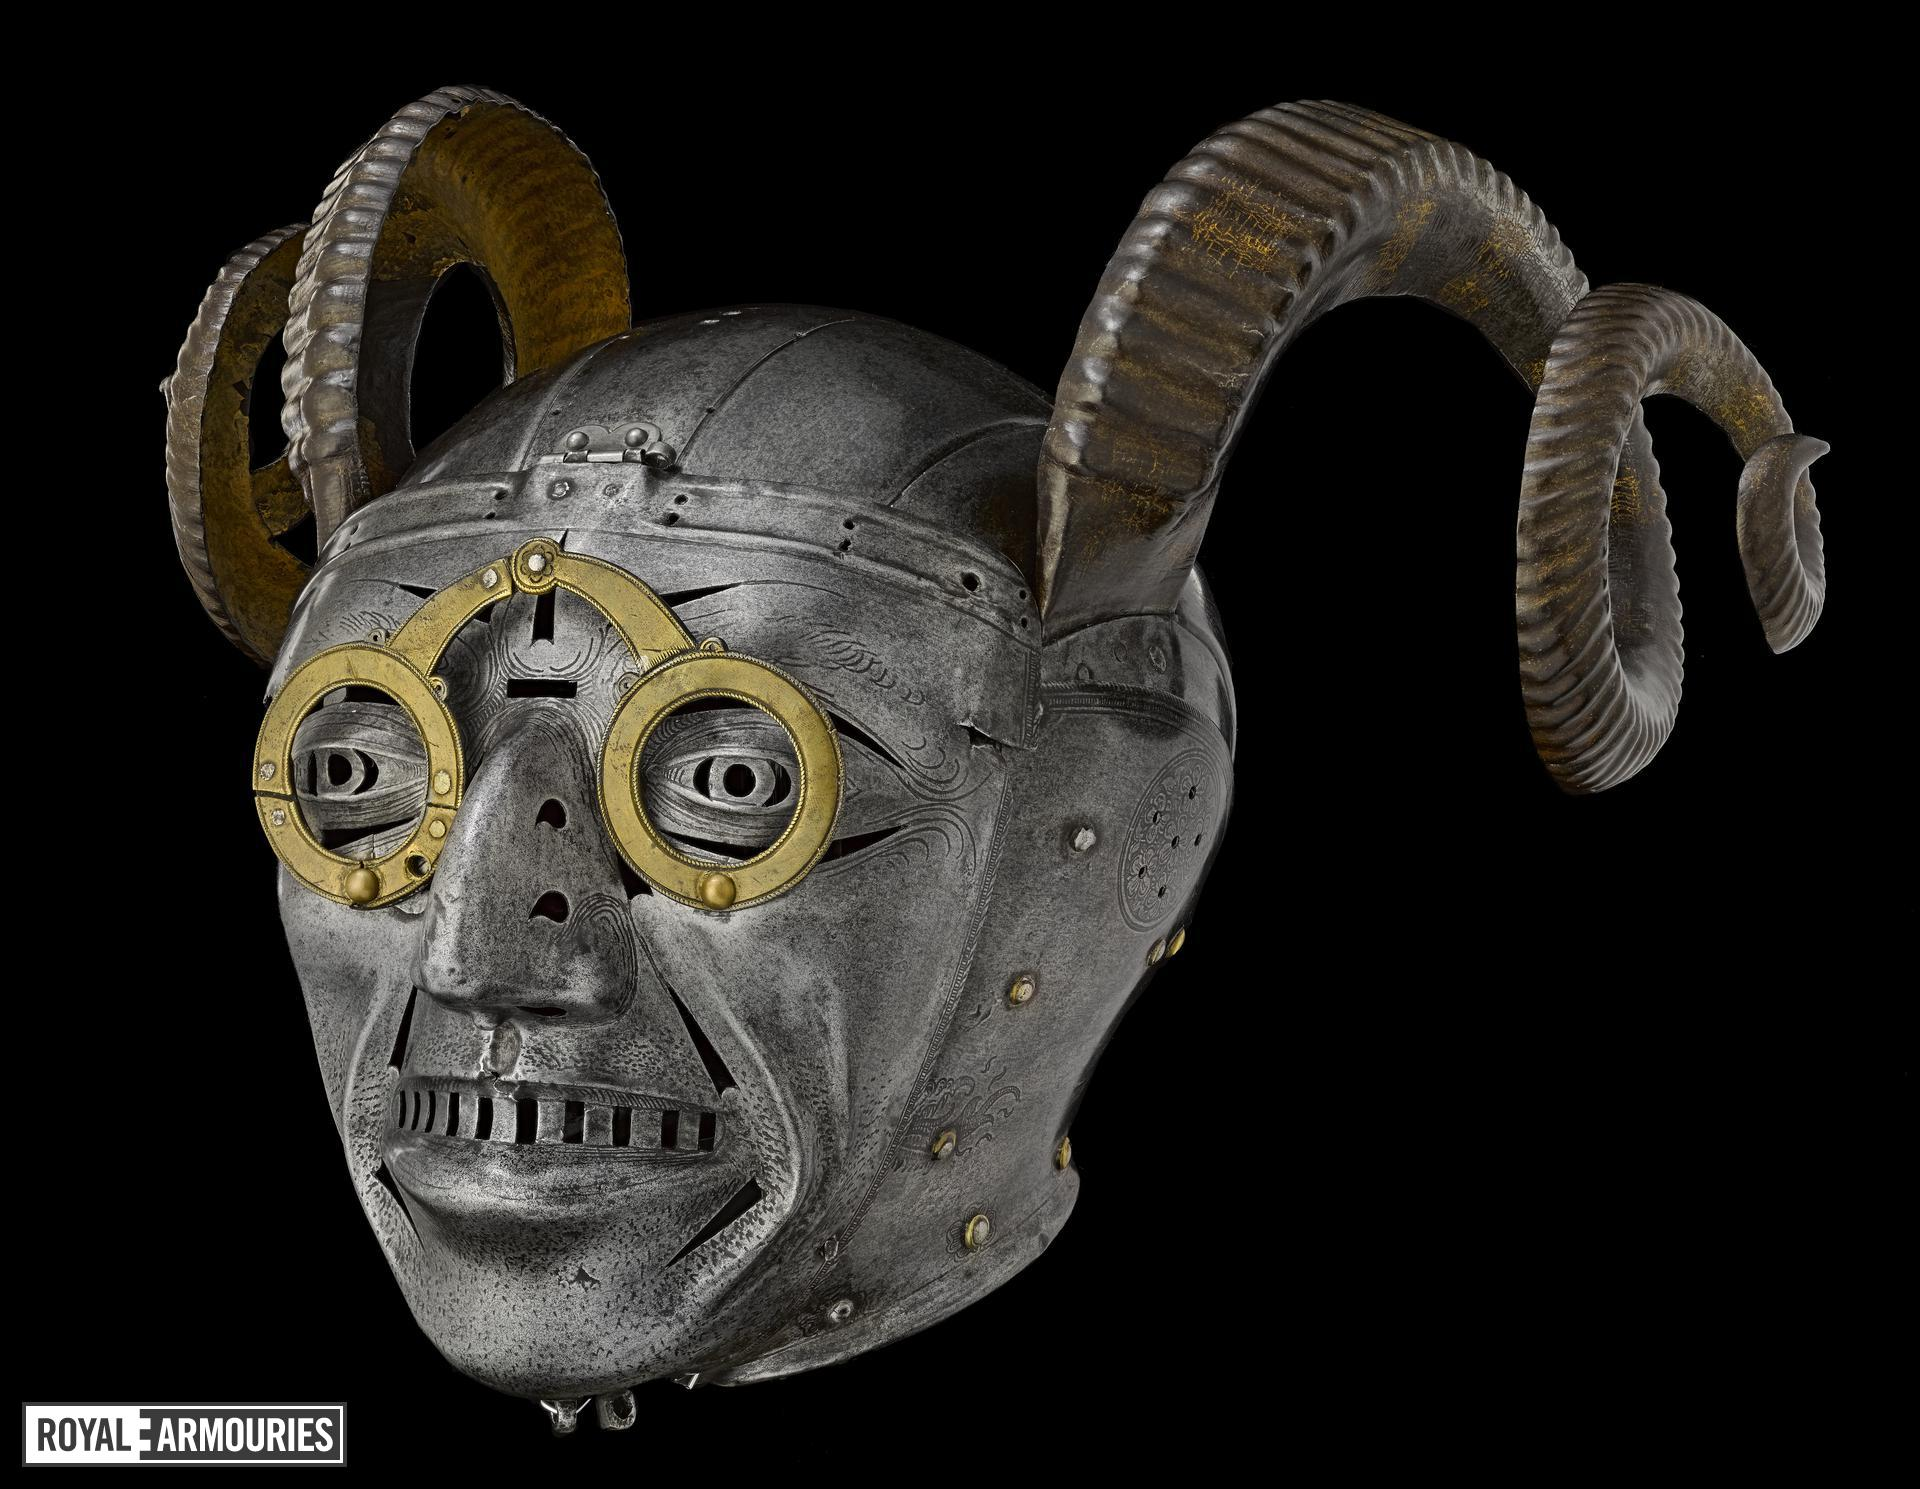 Armet - The Horned Helmet (1512) - Royal Armouries collections